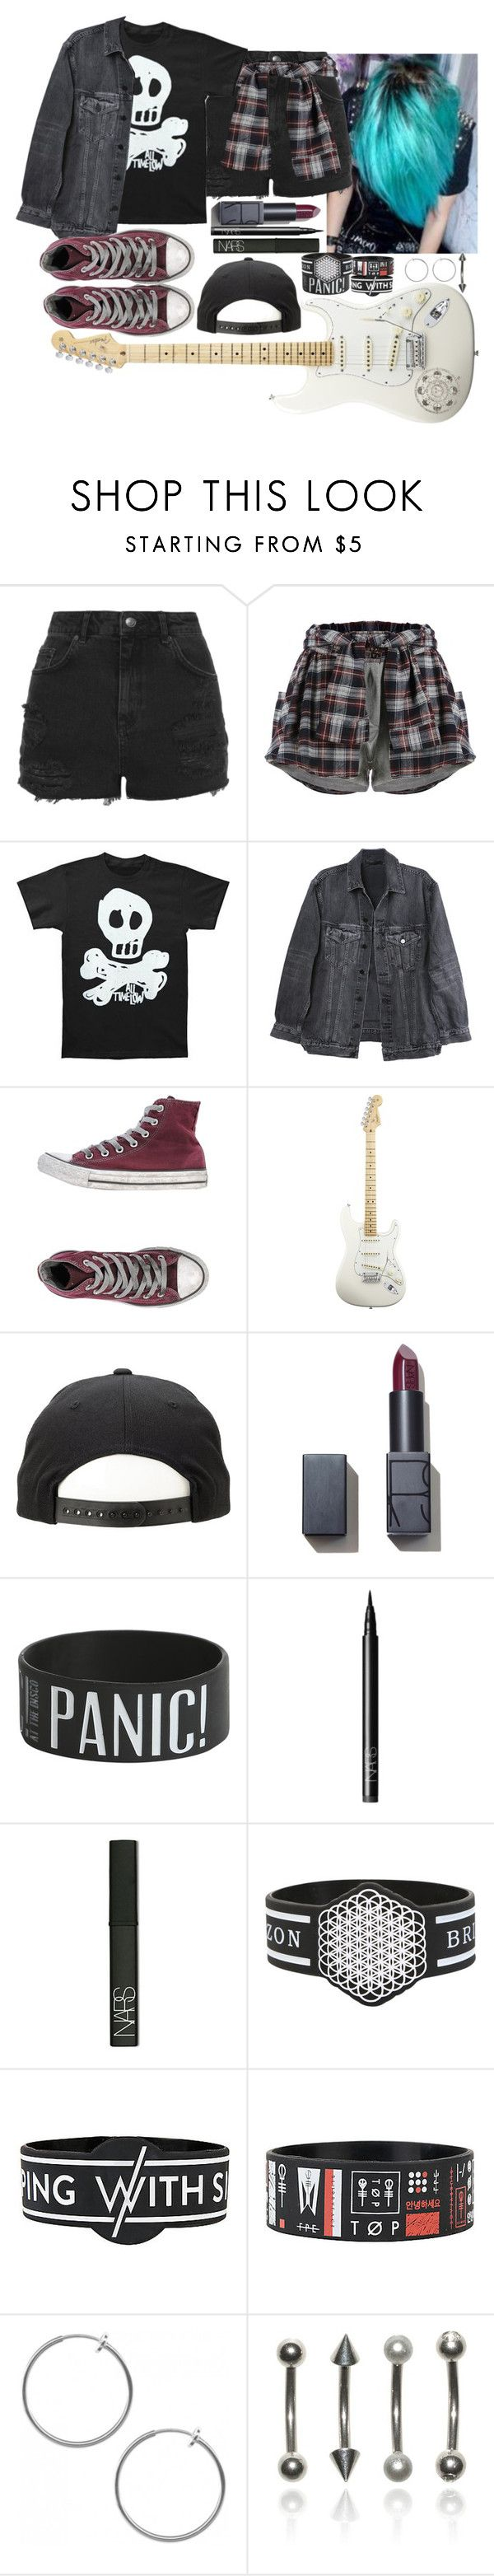 """[Concert in Germany w/ the girls]"" by purplemonkeys005 ❤ liked on Polyvore featuring Anastasia Beverly Hills, Topshop, Y/Project, Converse, American Standard, NARS Cosmetics and mandy"